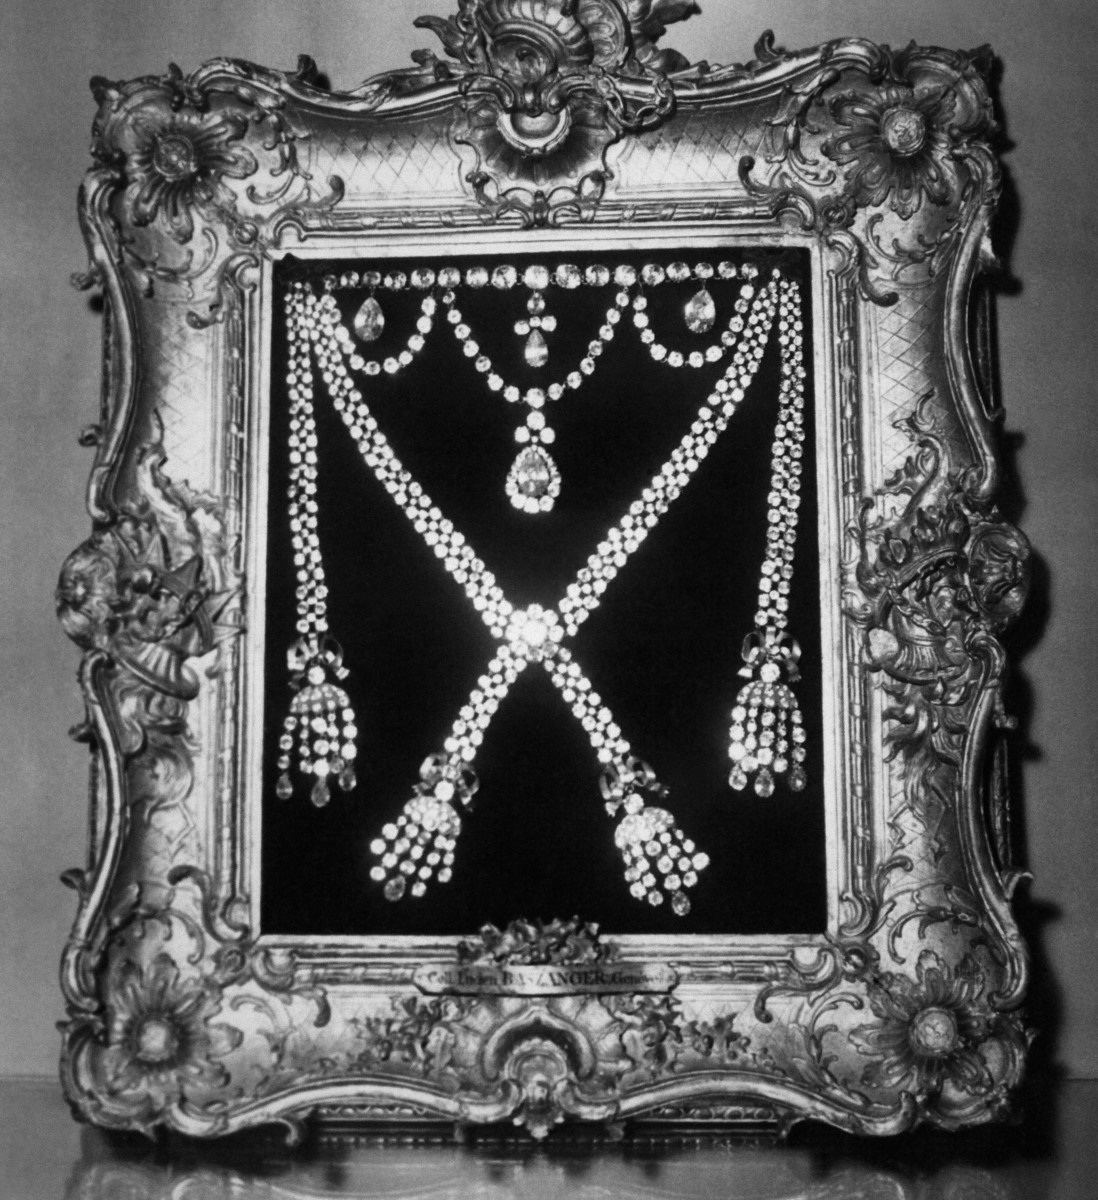 The diamond necklace of the affair, exhibited in Versailles, 1955.